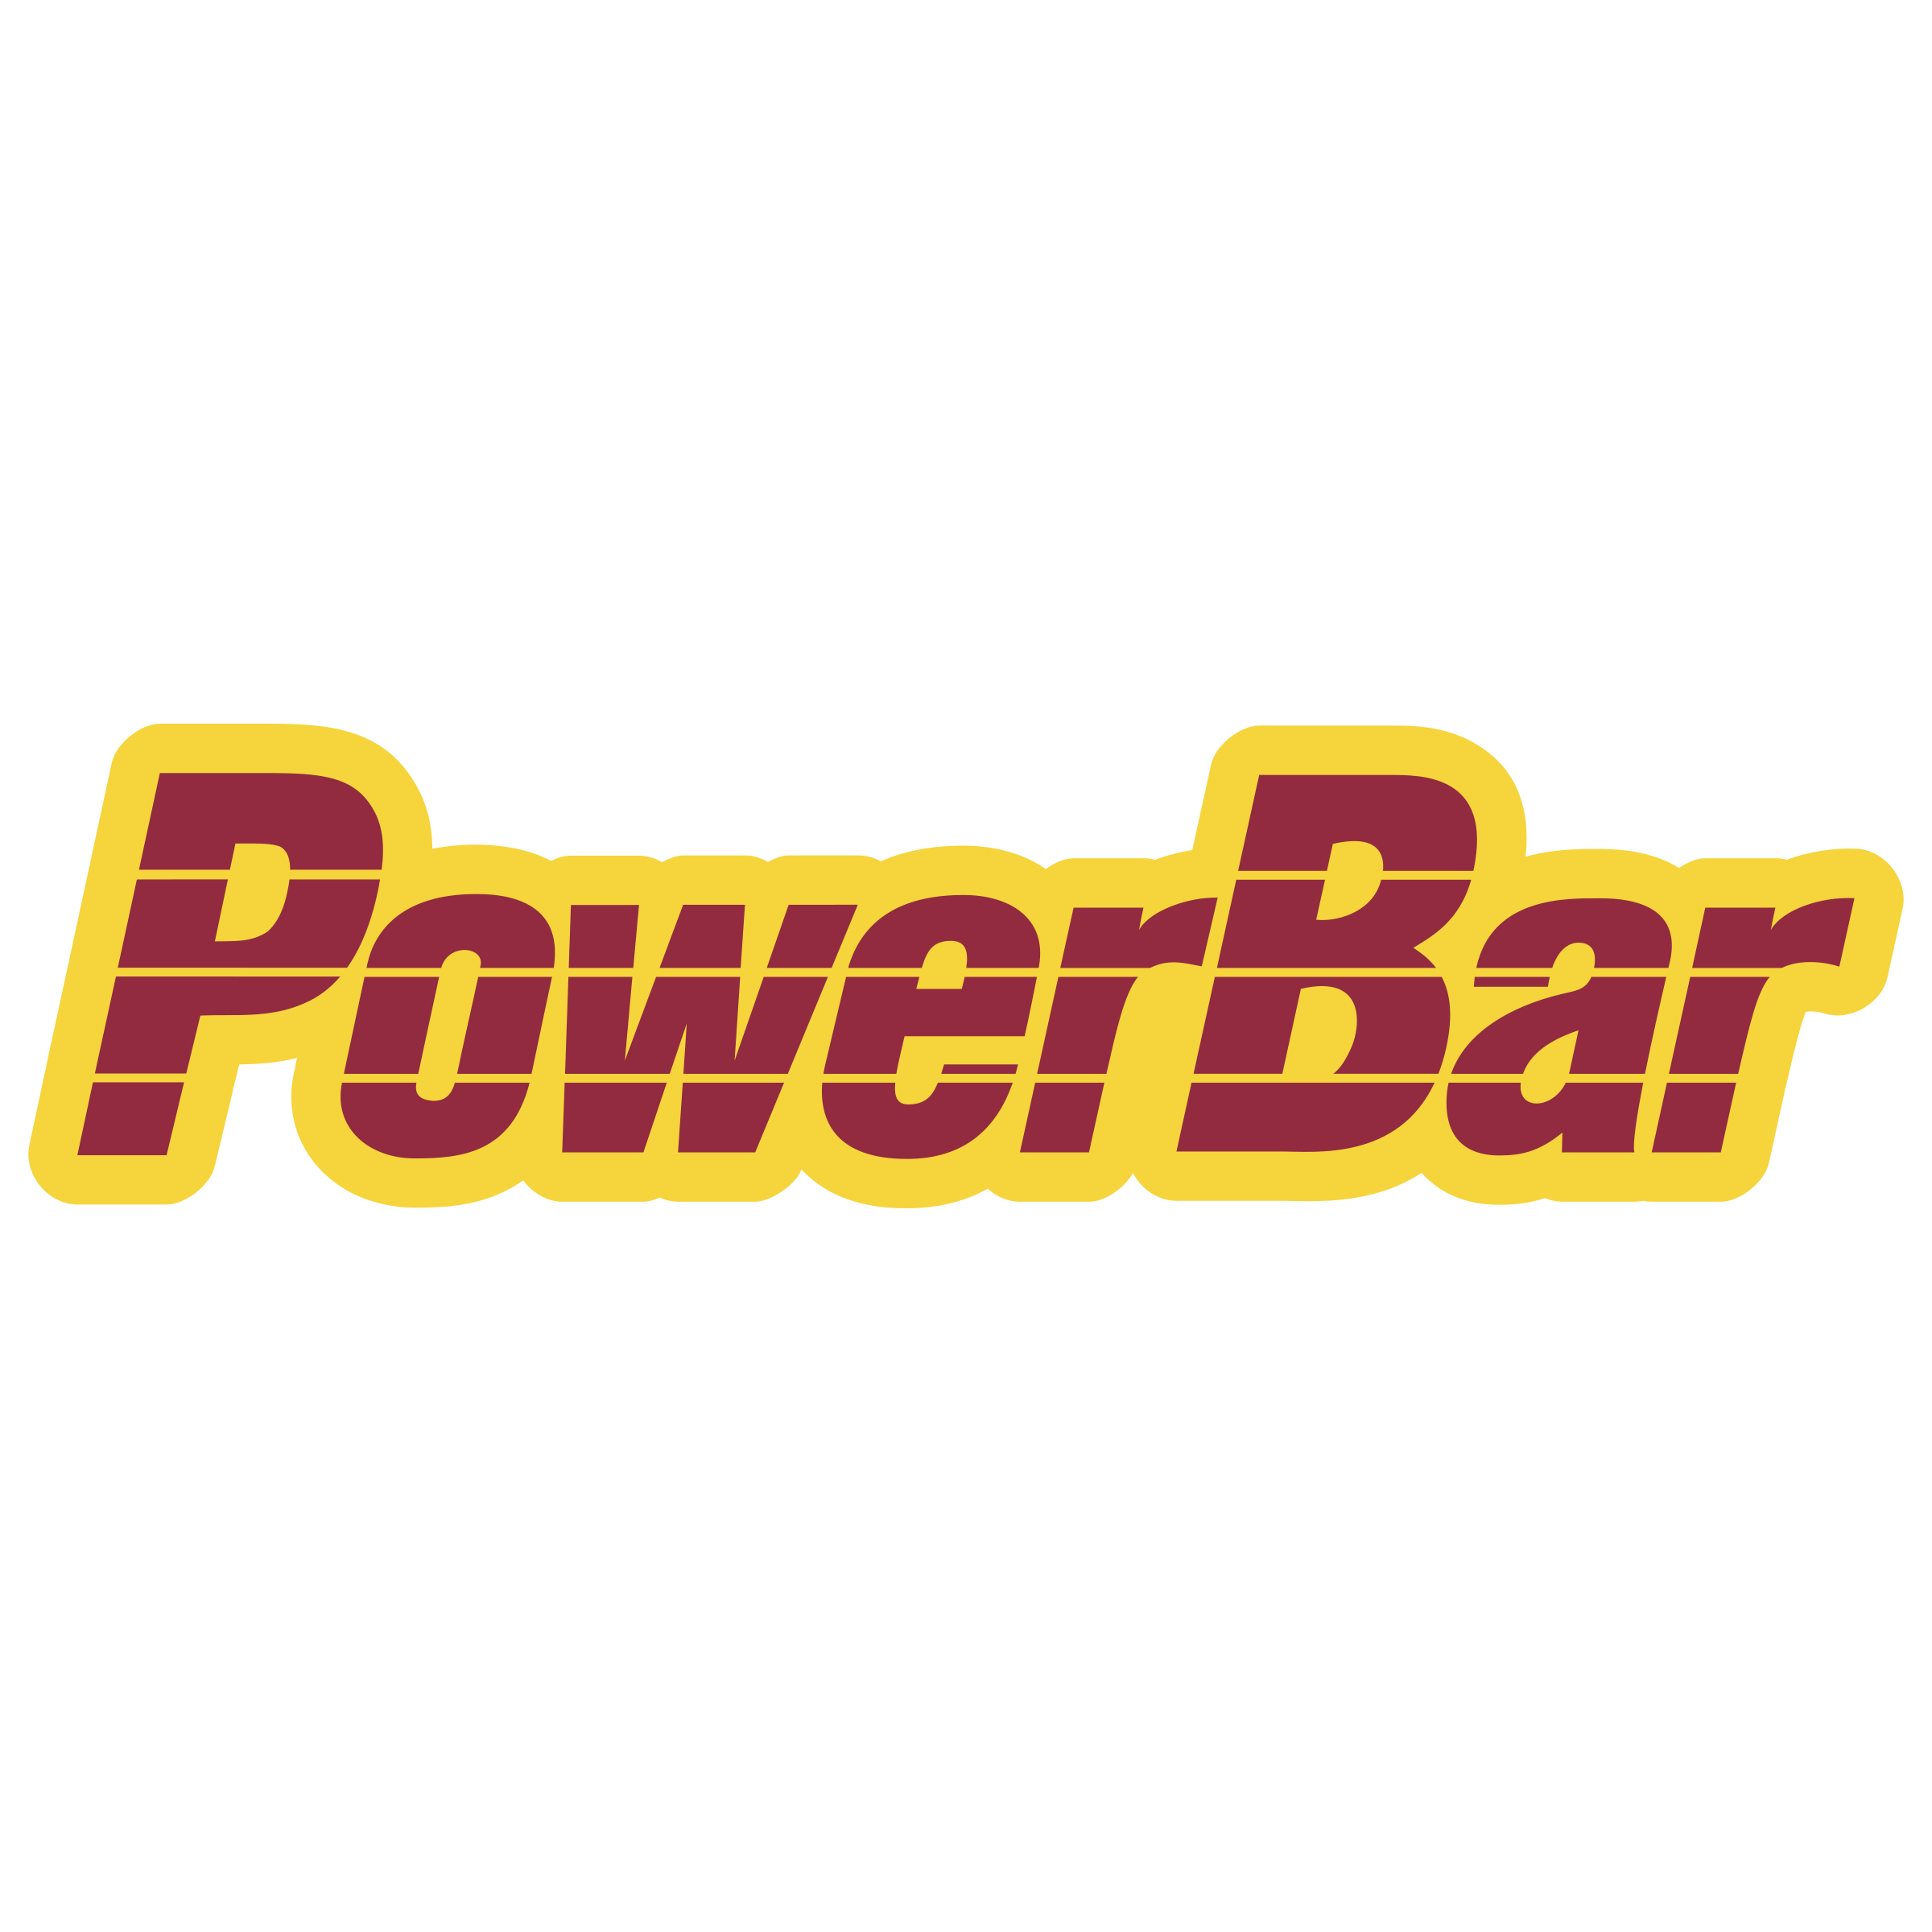 PowerBar Logo PNG Transparent & SVG Vector.